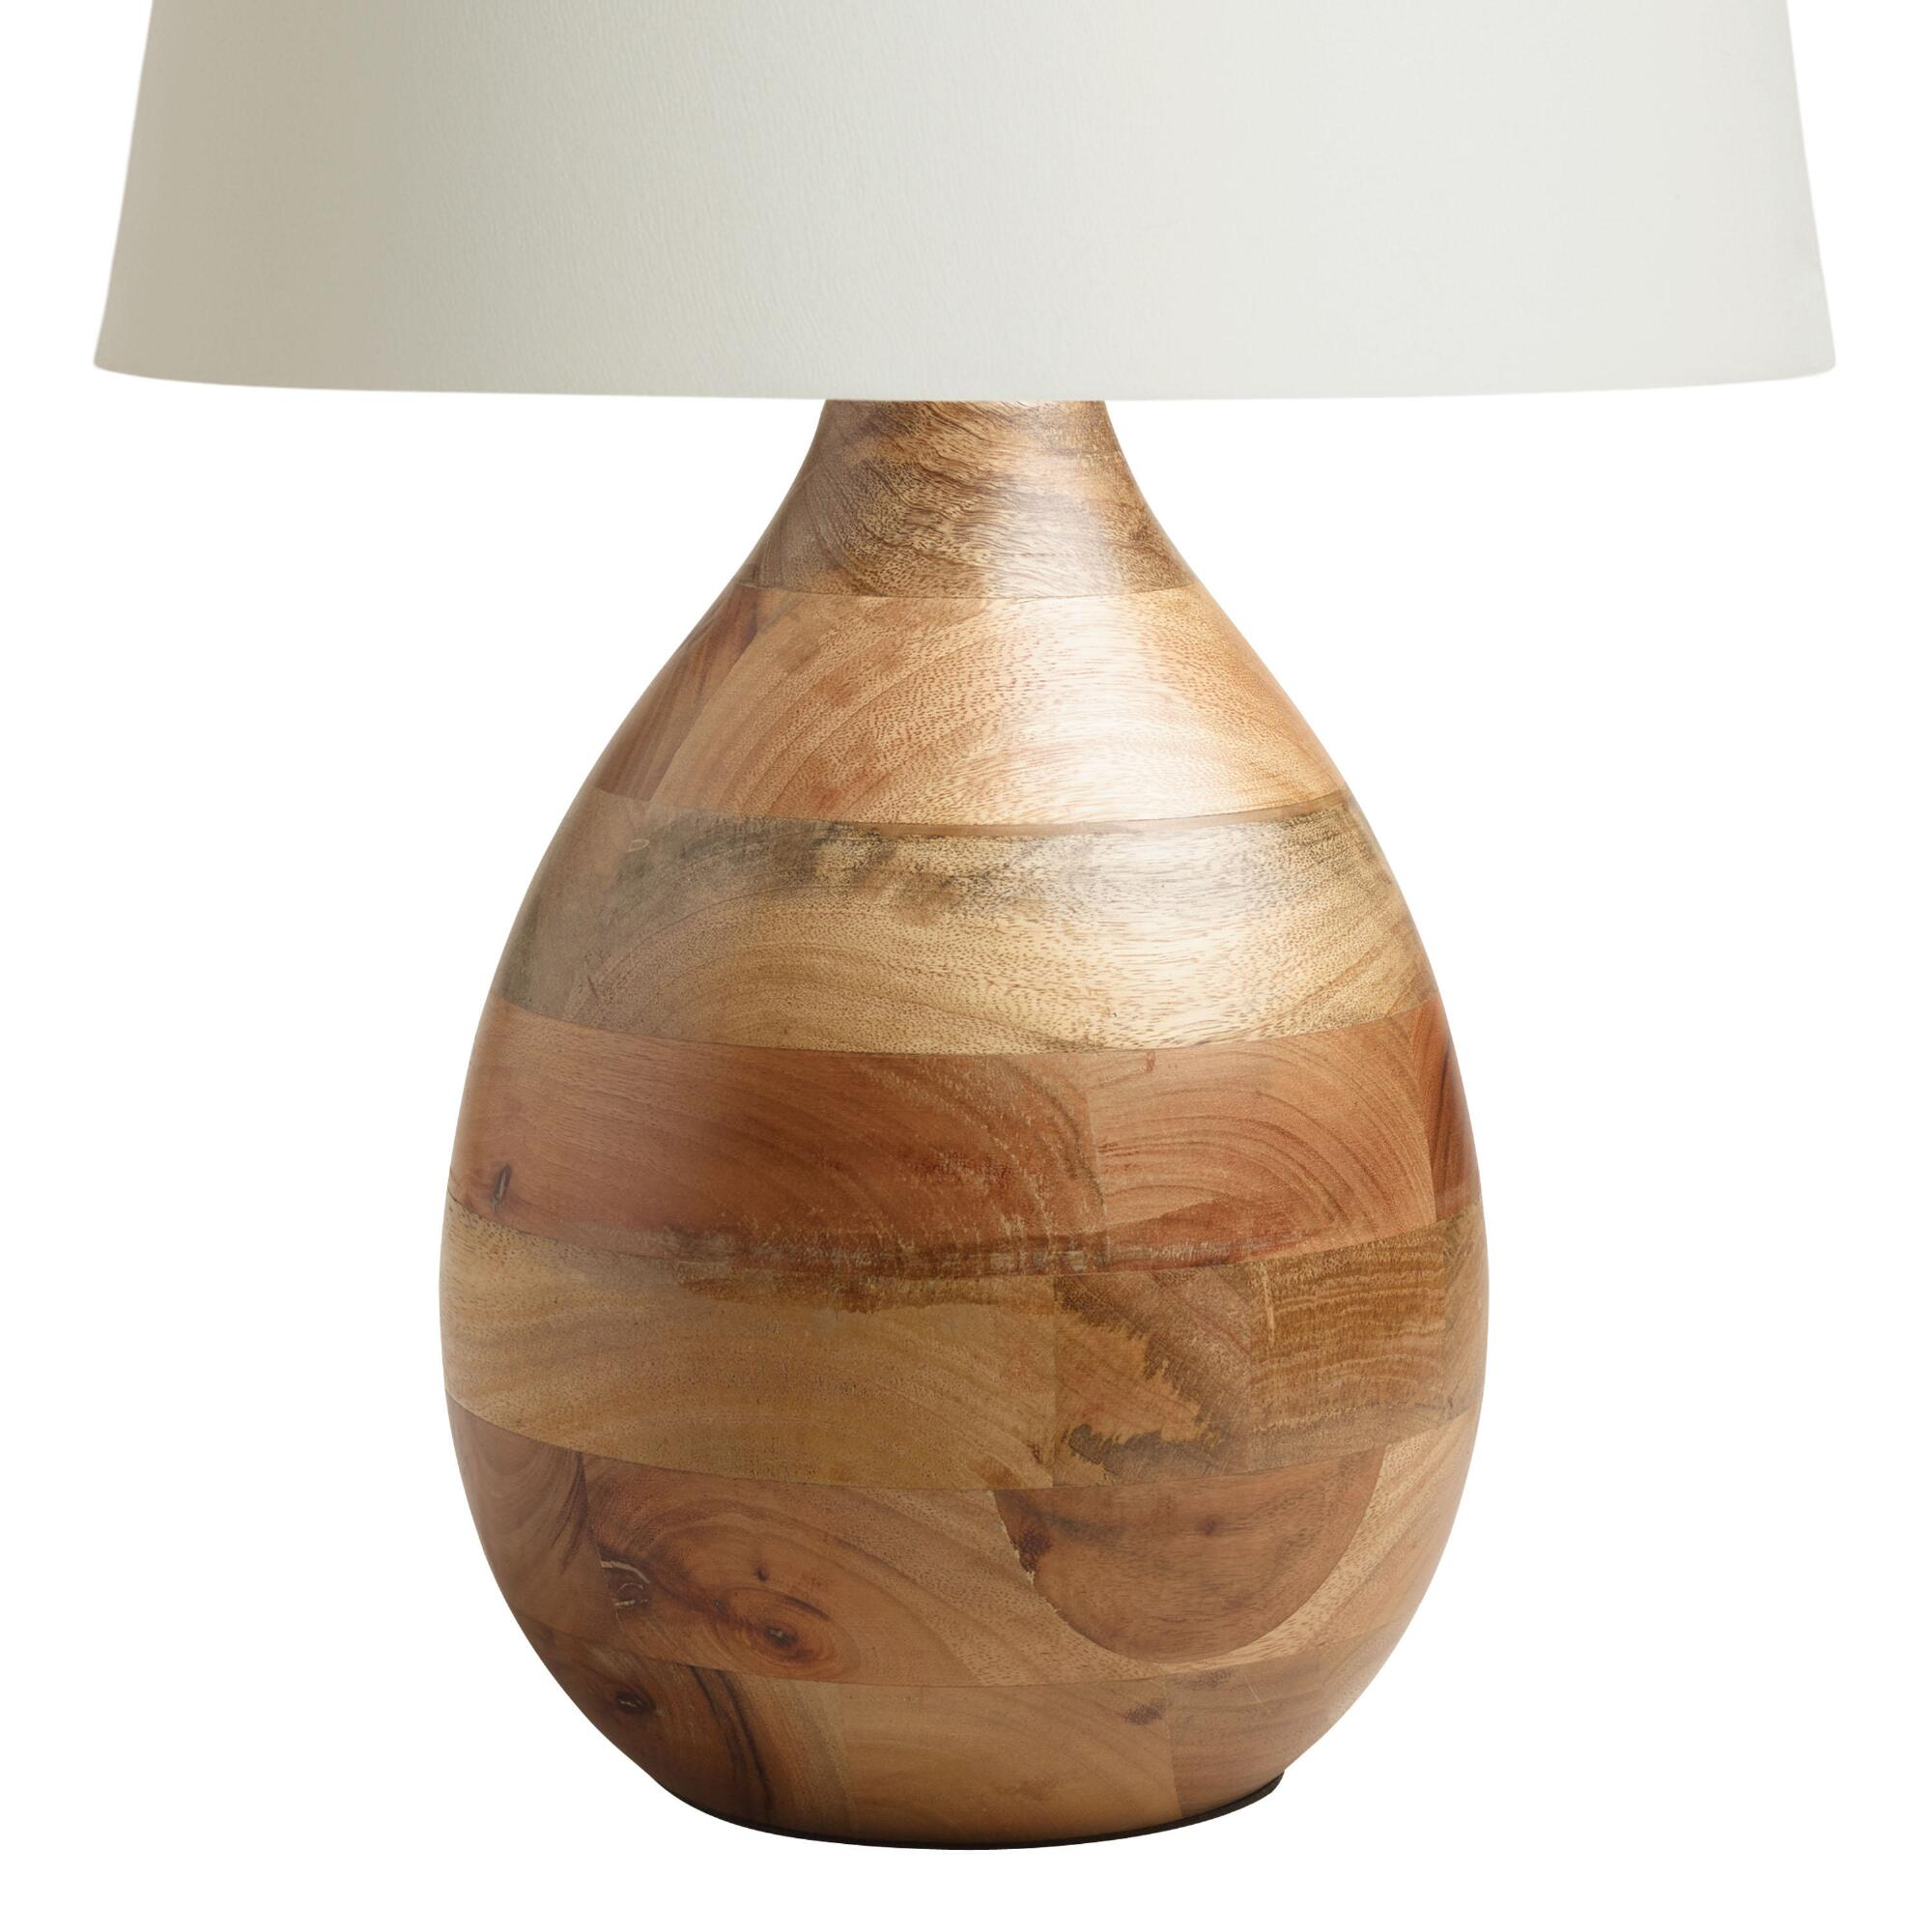 Wood teardrop table lamp base world market for Lamp wooden